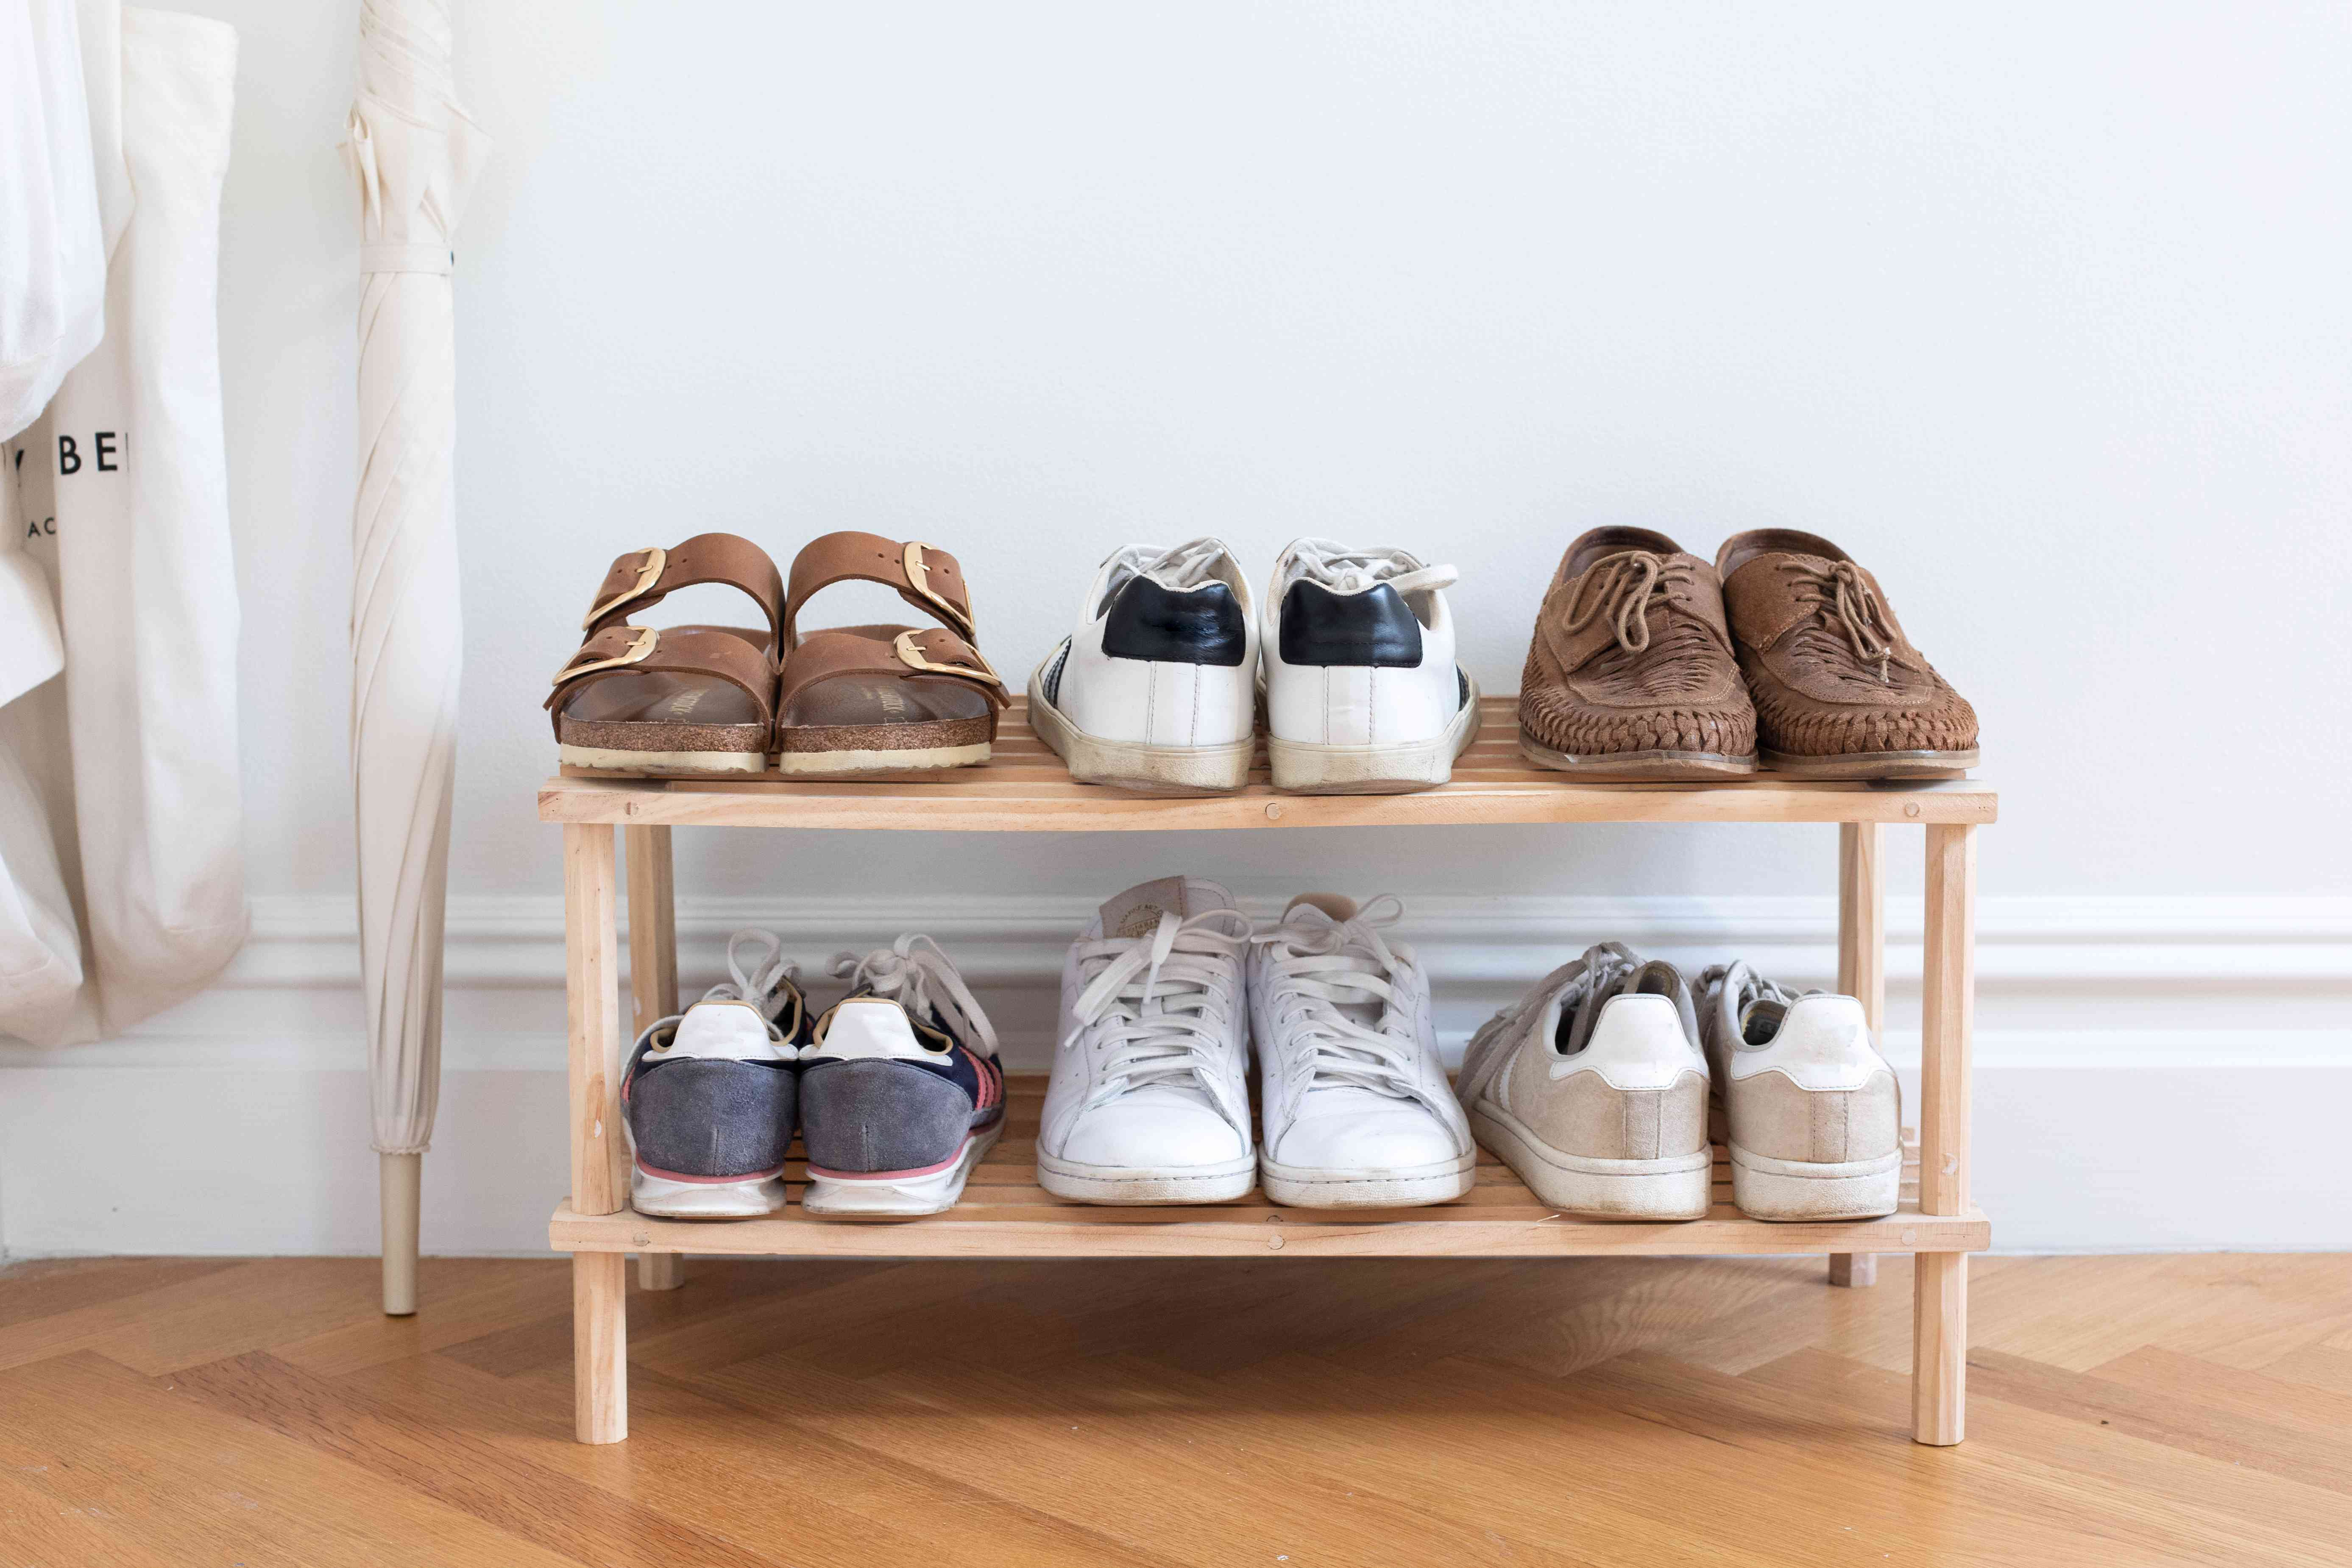 frequently worn shoes on a rack near an entryway point